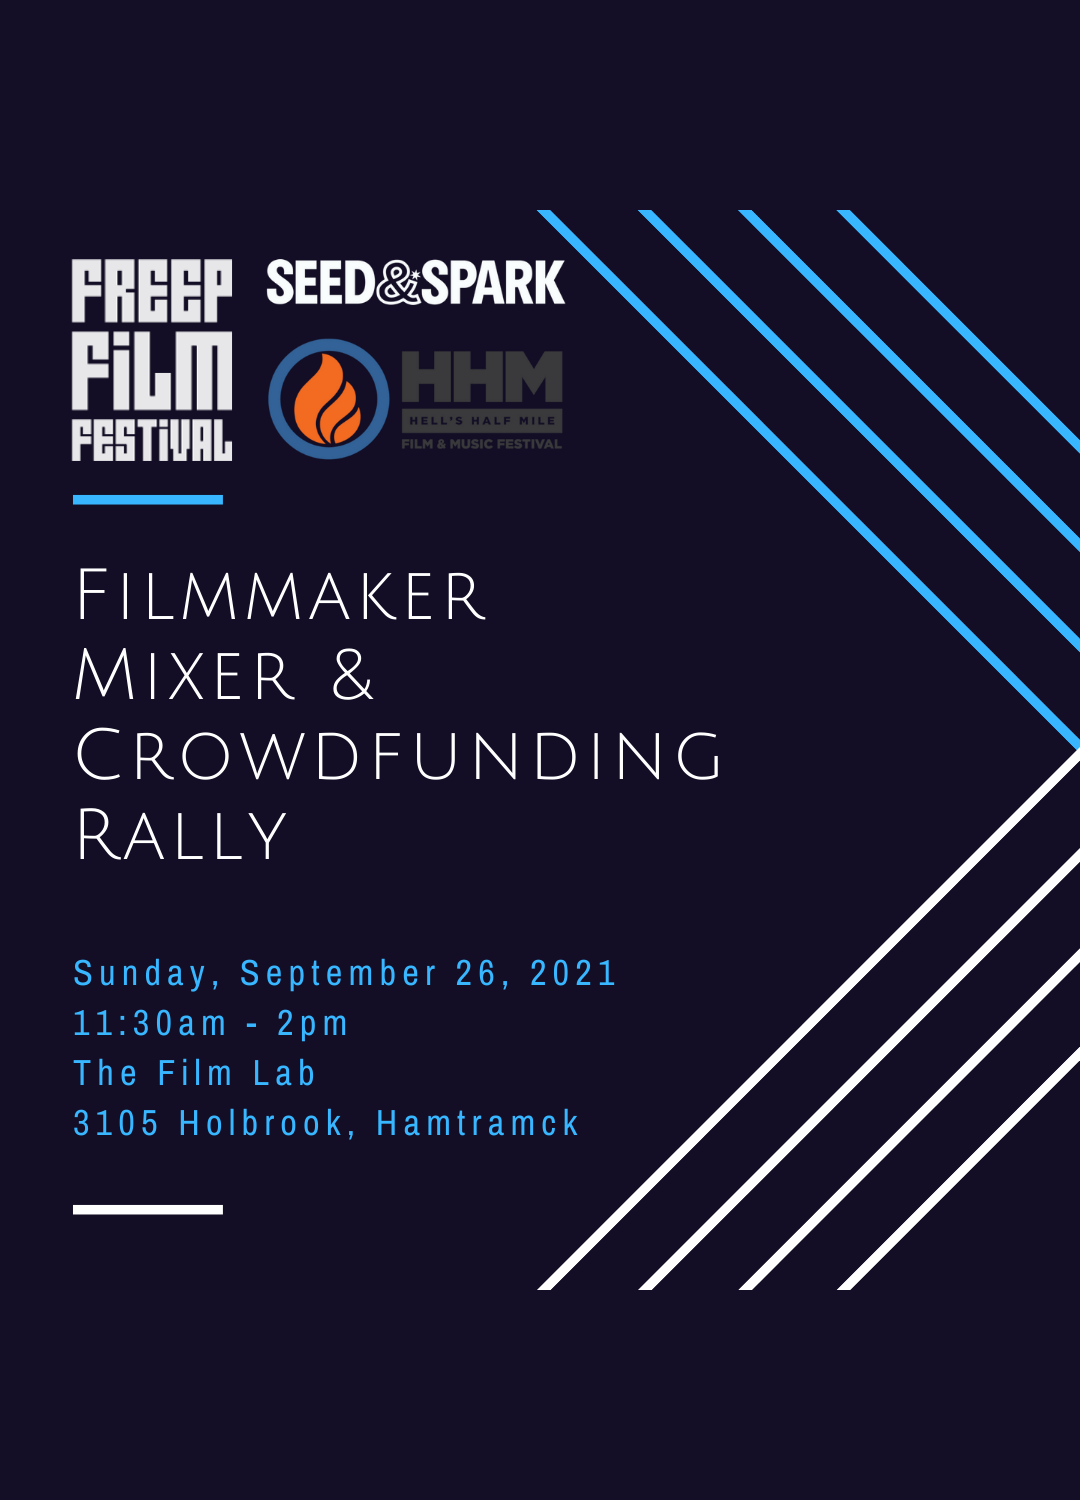 Poster for Freep Film Festival Filmmaker Mixer & Crowdfunding Rally